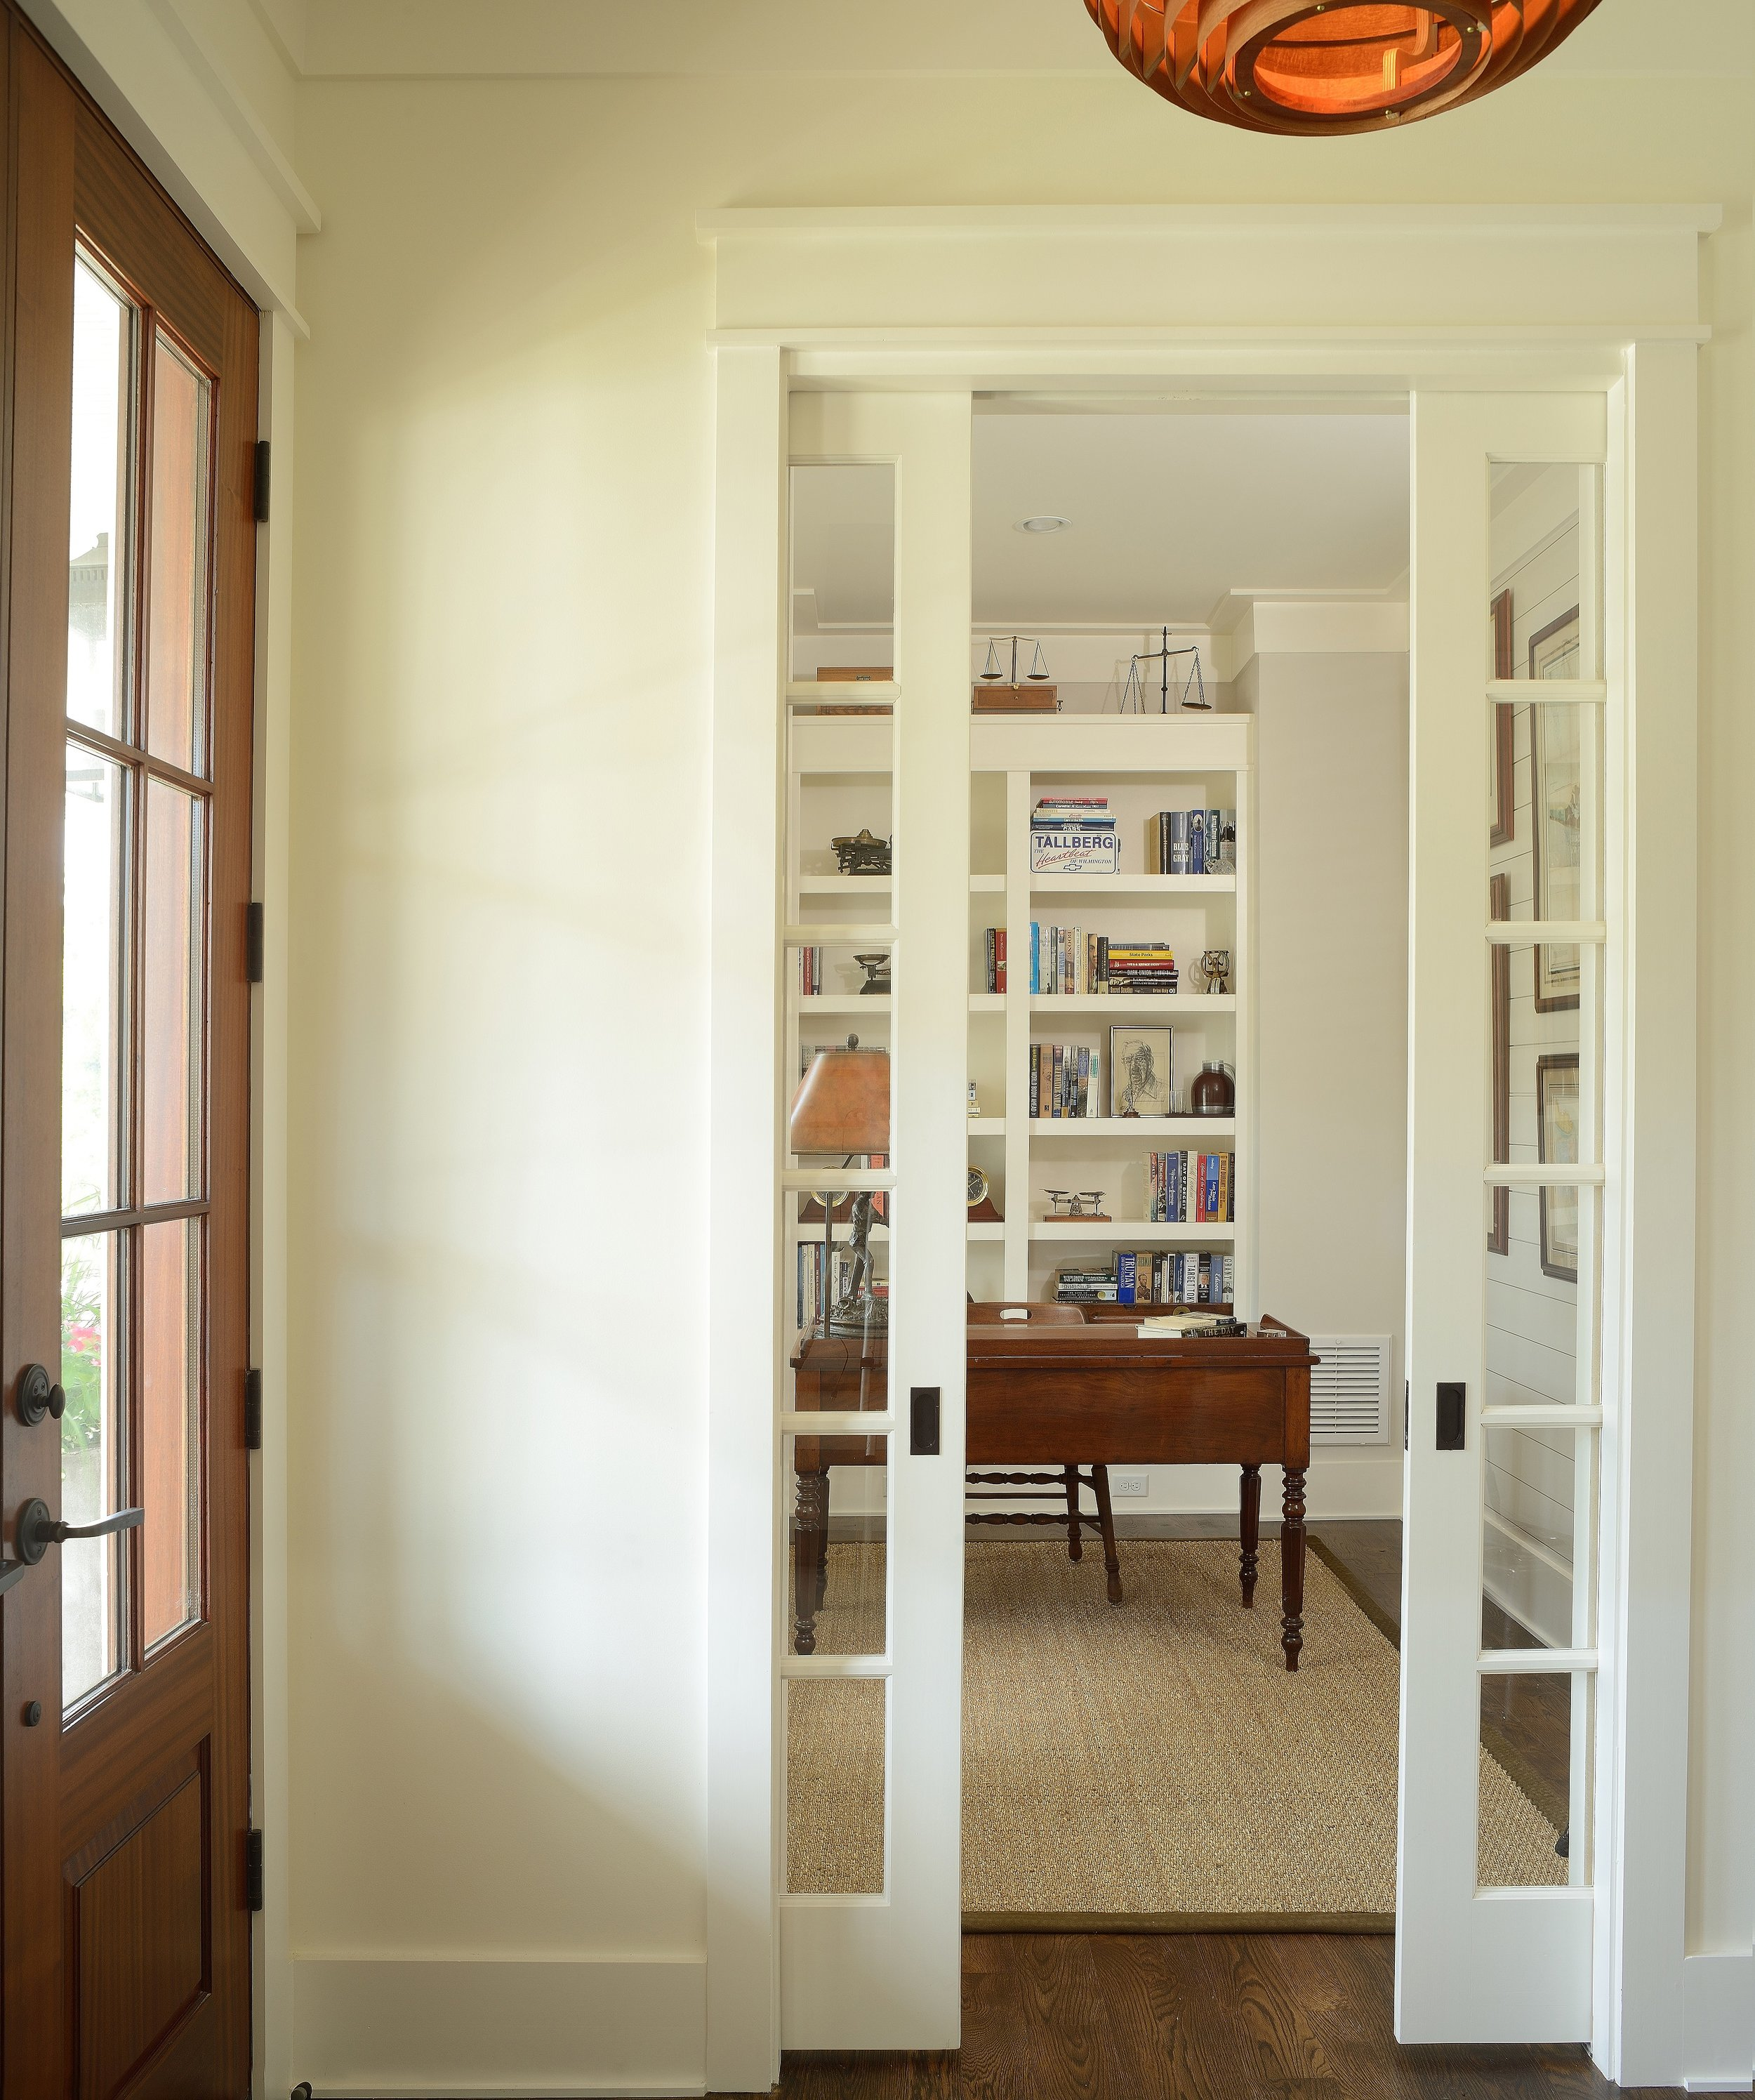 foyer resized.jpg